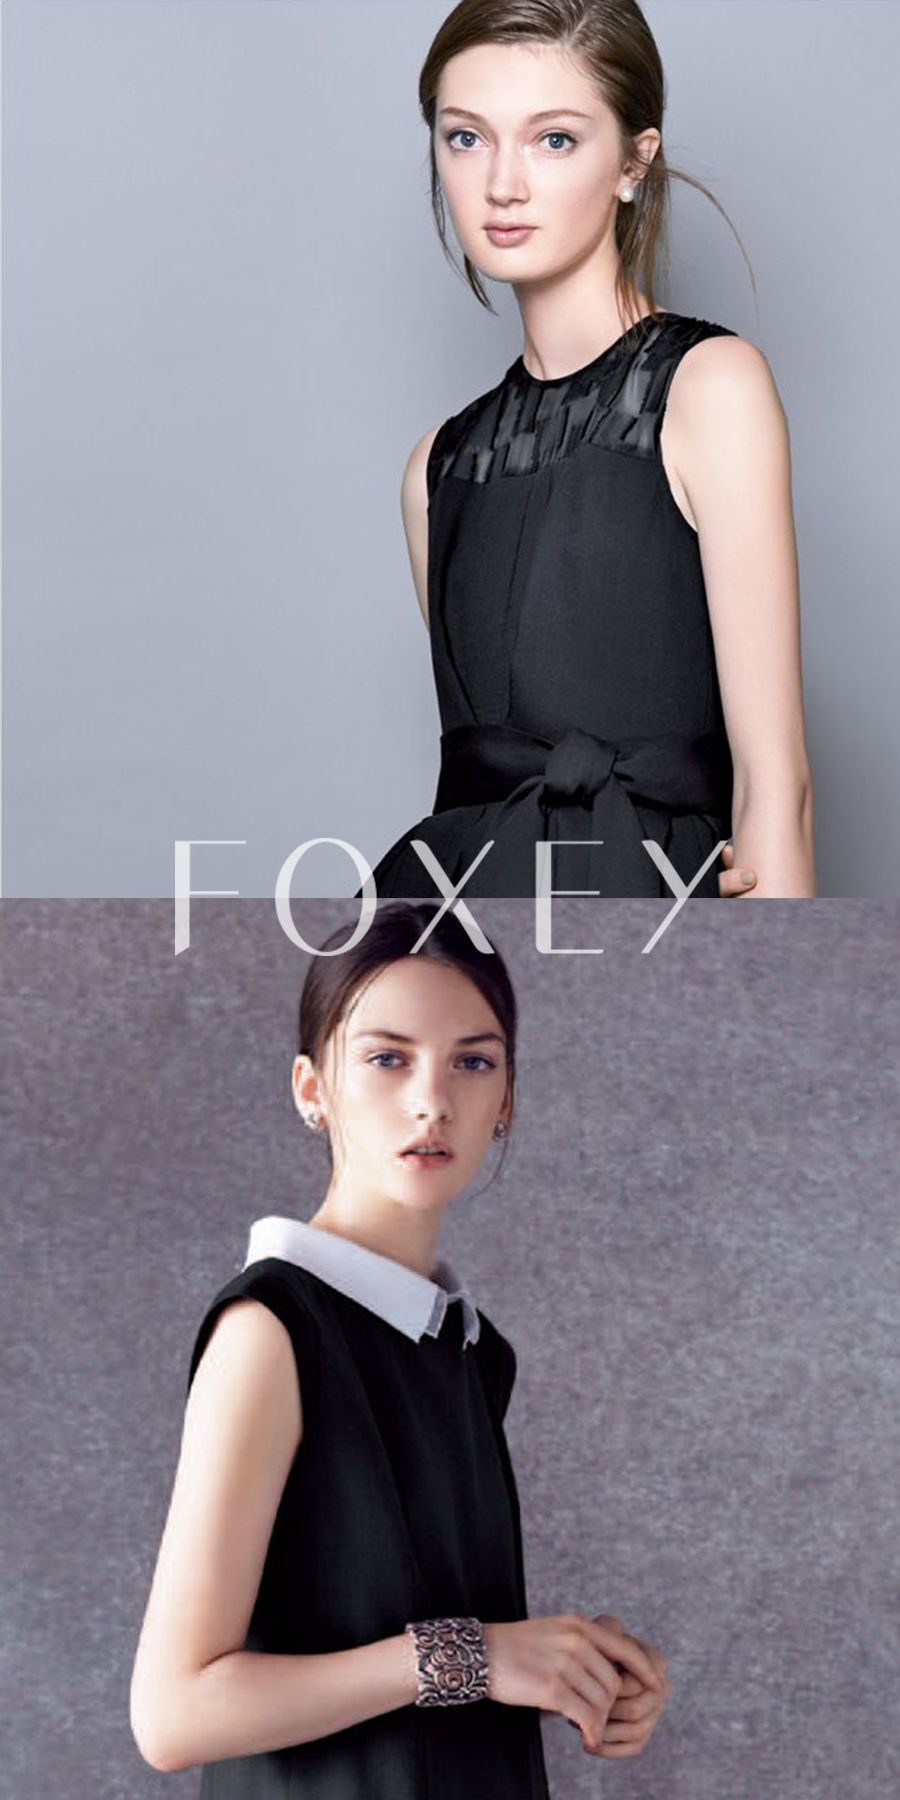 FOXEY(フォクシー)買取専門店